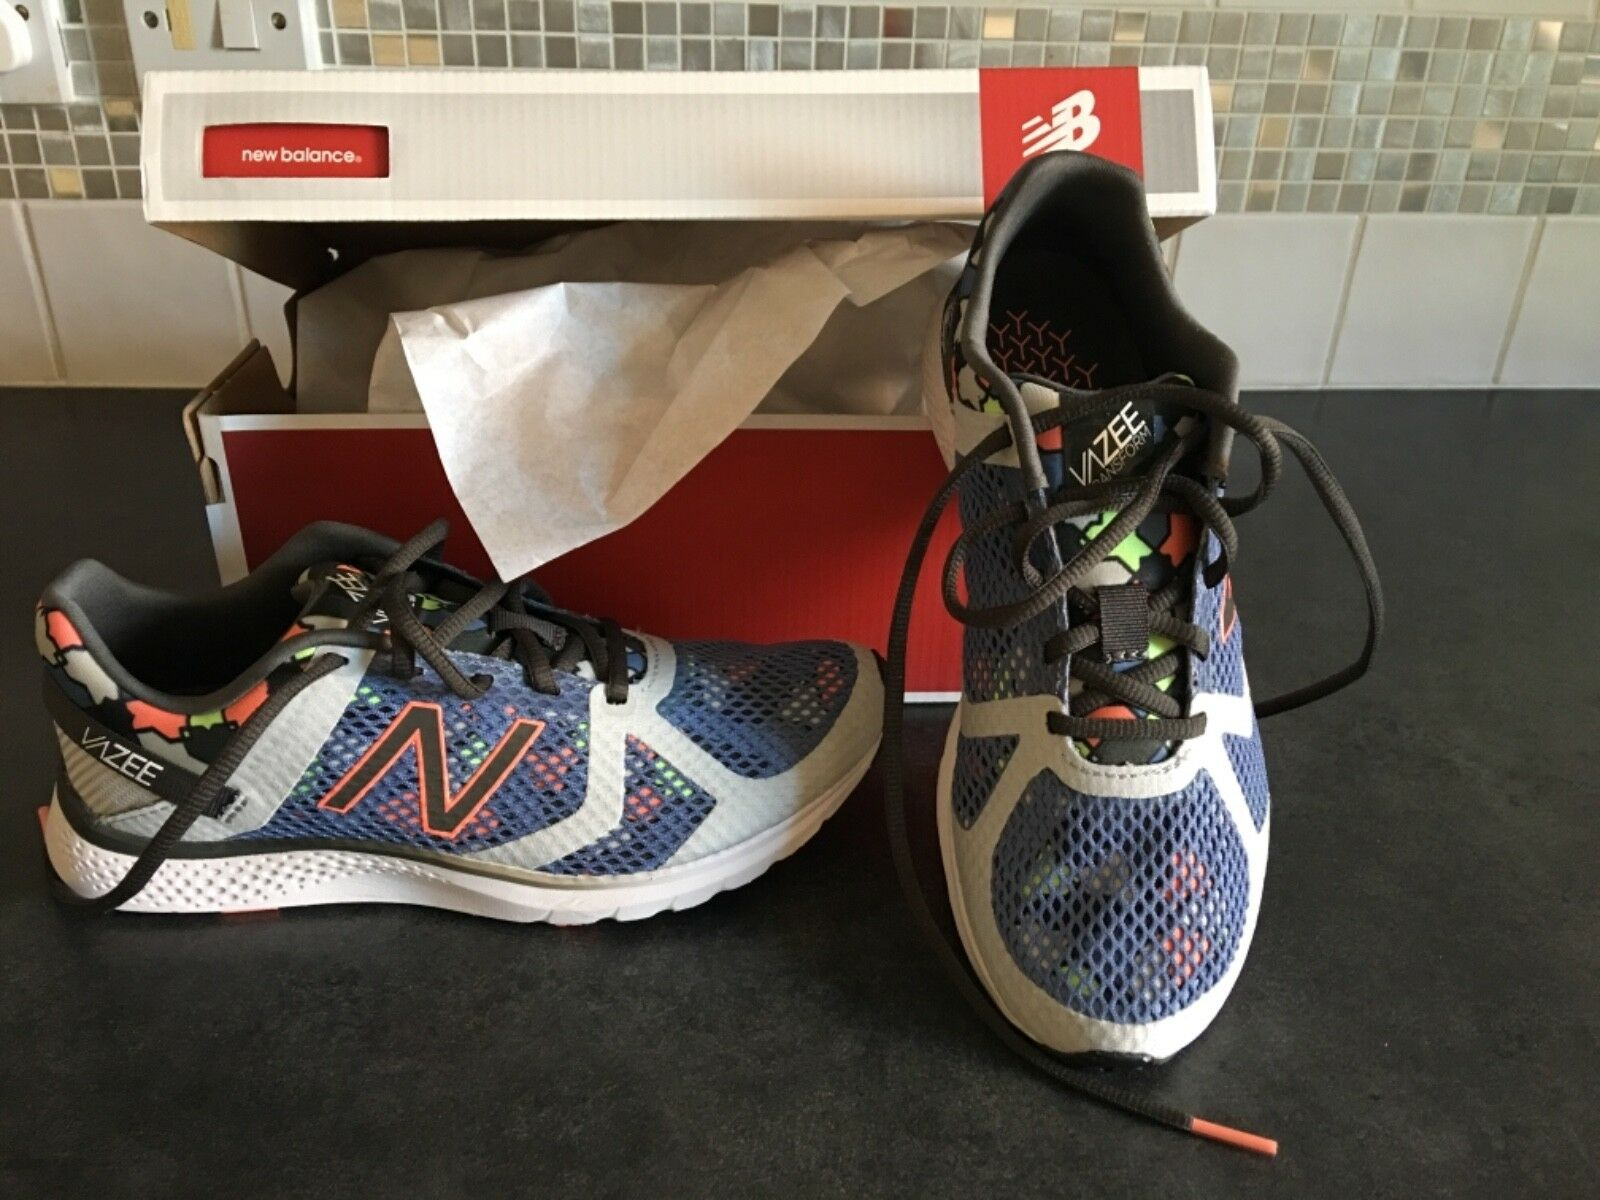 BNWT New Balance Size 5 Women's Running shoes Gym Fitness Trainers